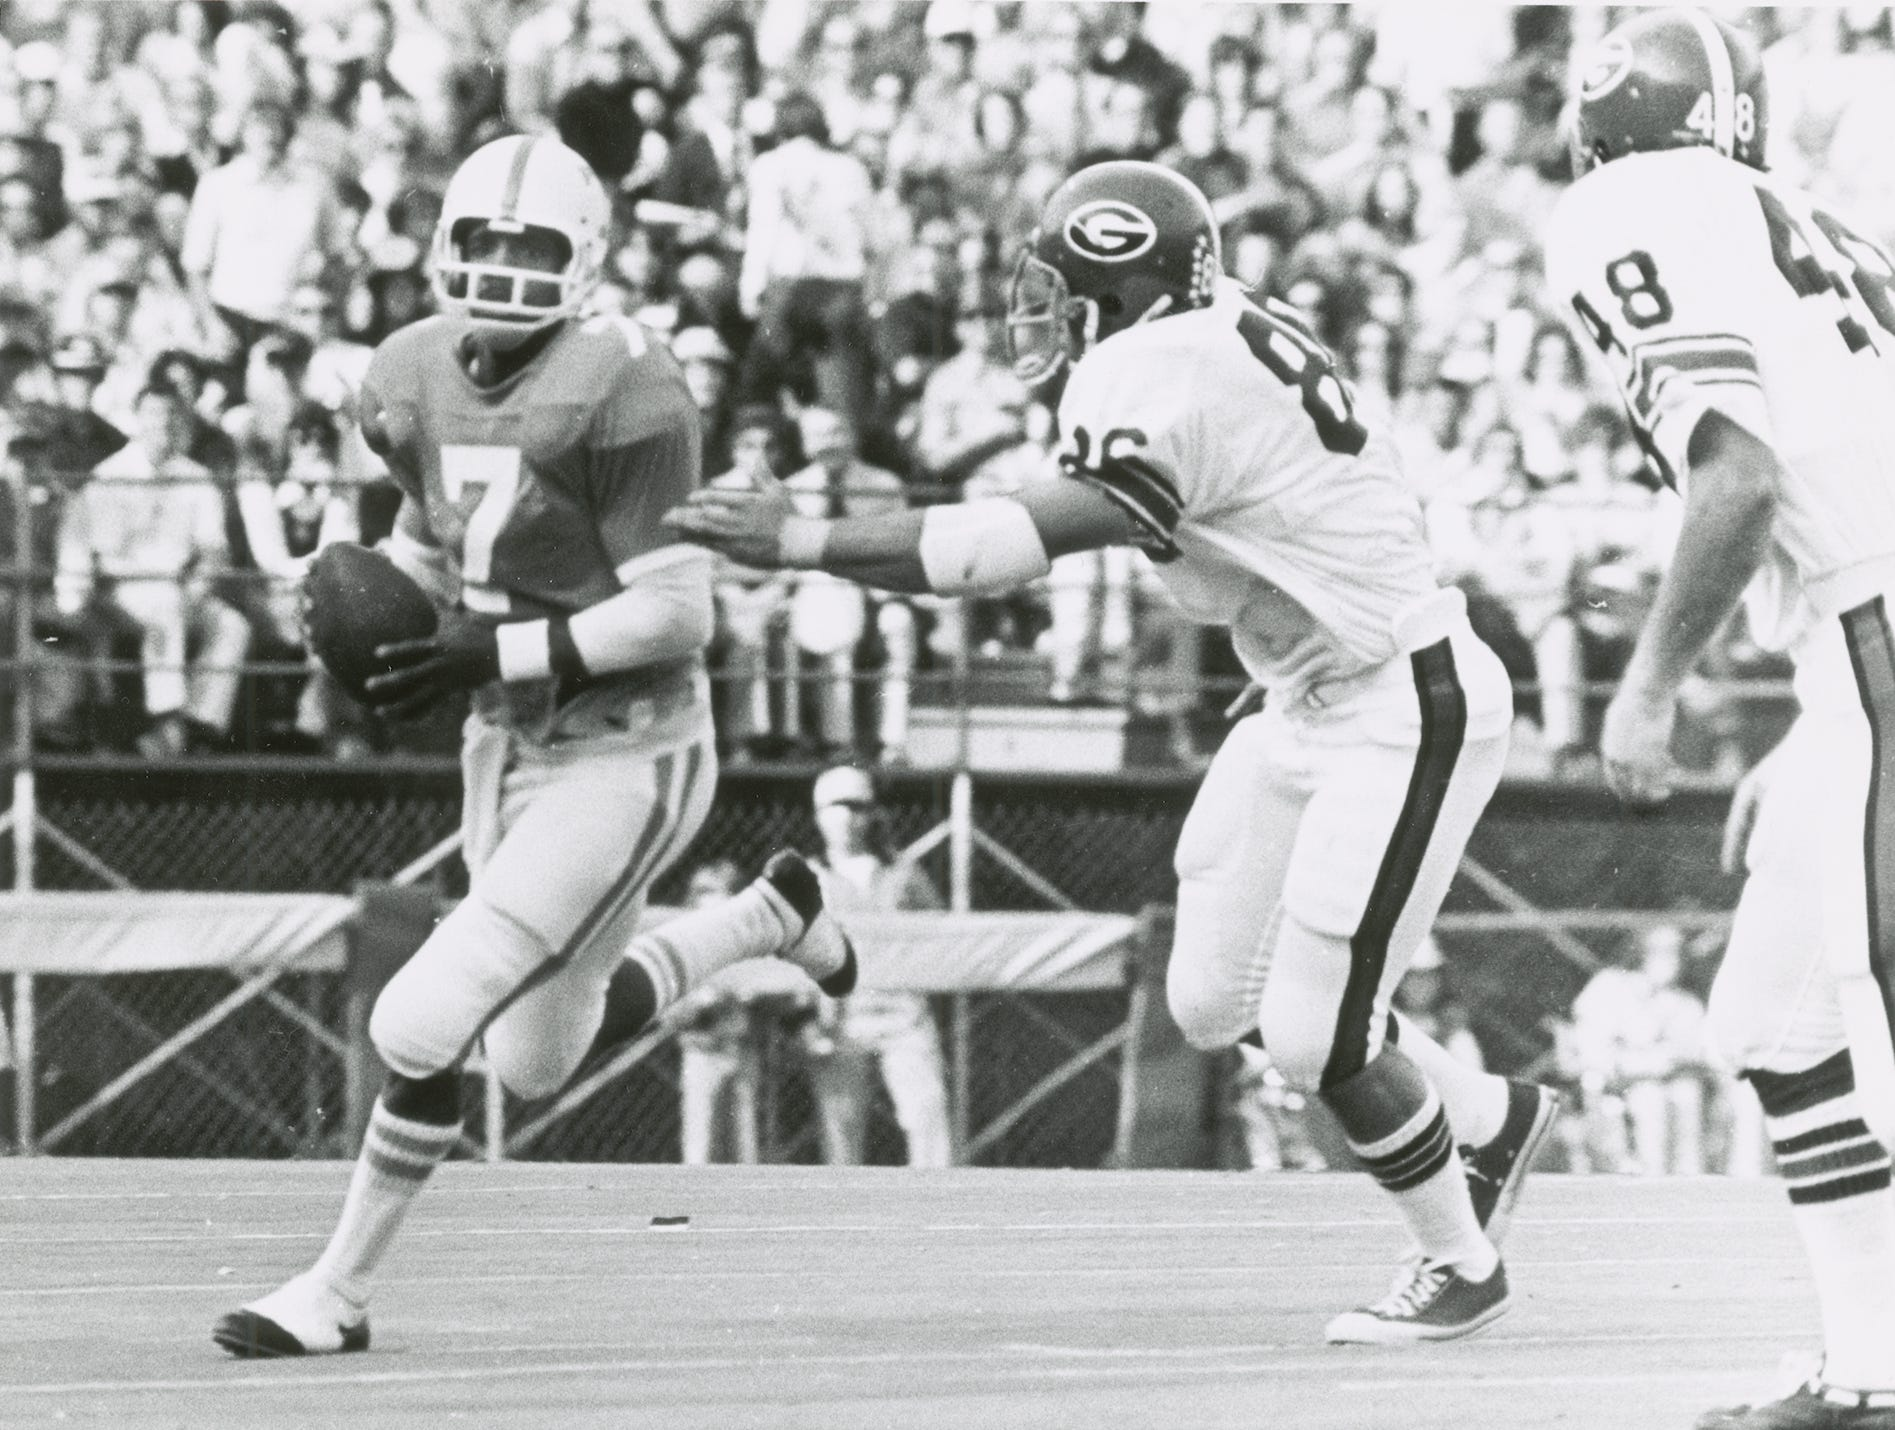 Tennessee quarterback Condredge Holloway tries to outrun a Georgia defender during a game at Neyland Stadium on Nov. 2, 1973.  The Bulldogs defeated the Vols 35-31.